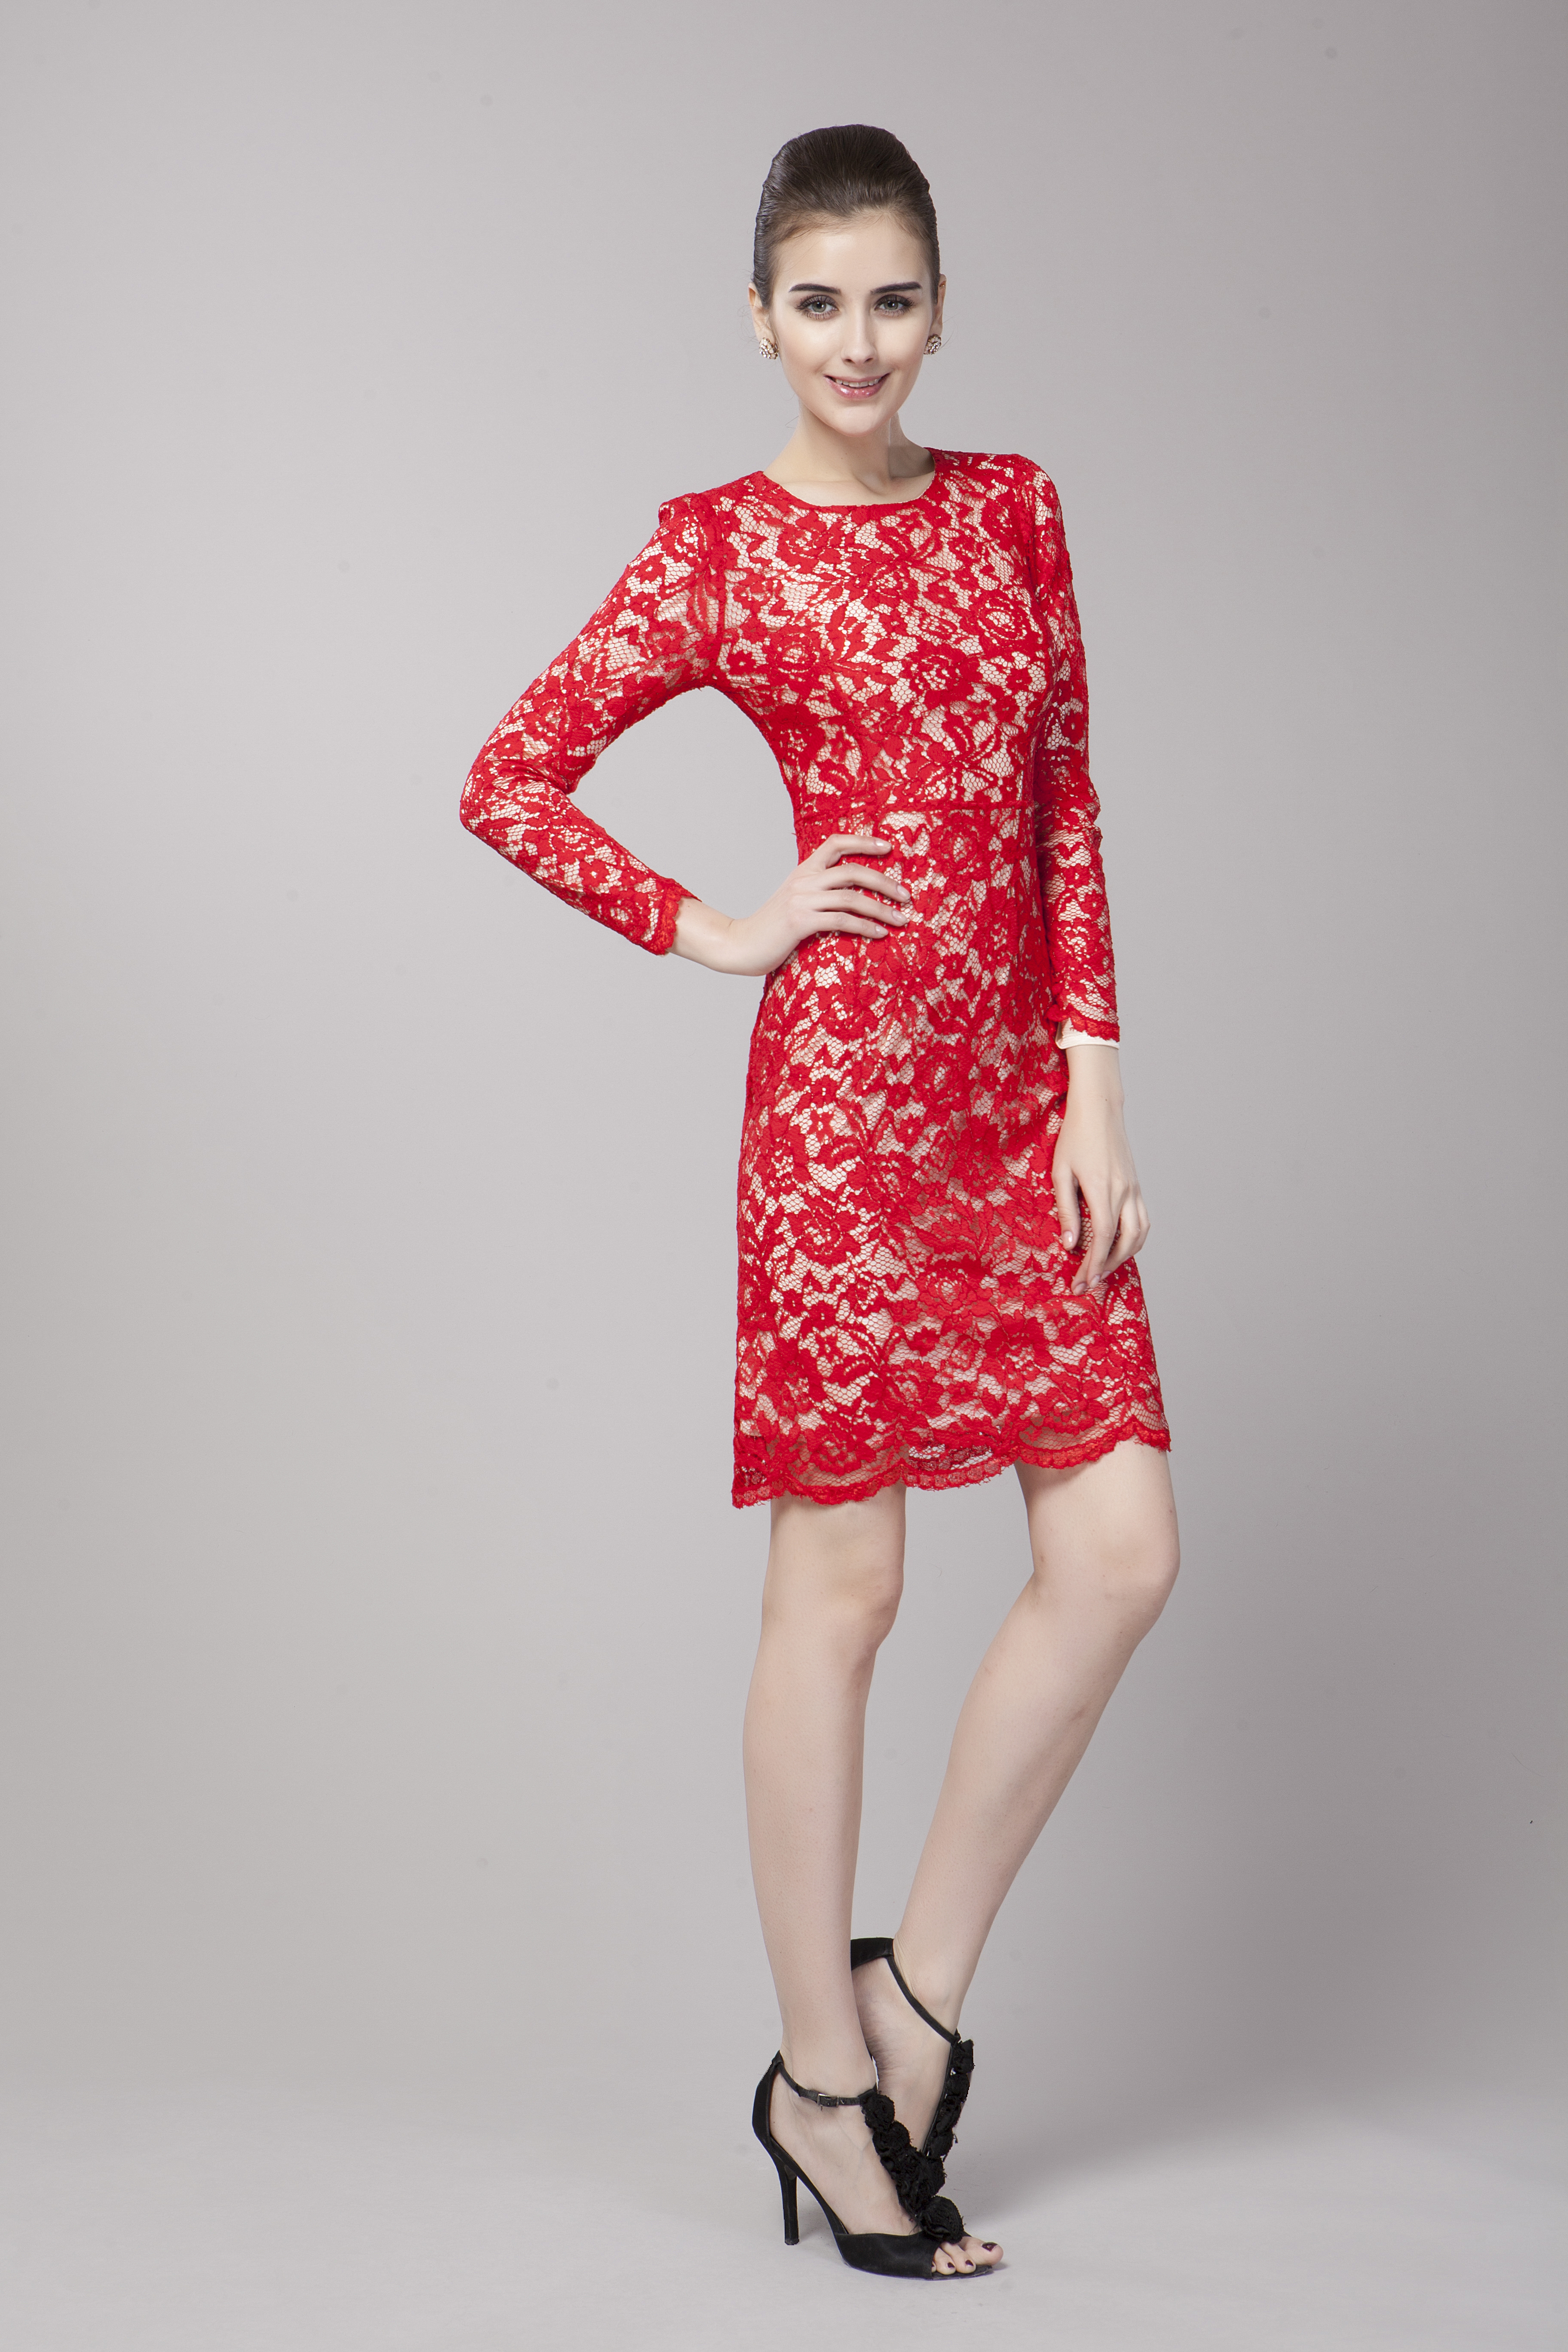 Elegant Red Lace Long Sleeve Cocktail Party Dress - TheCelebrityDresses